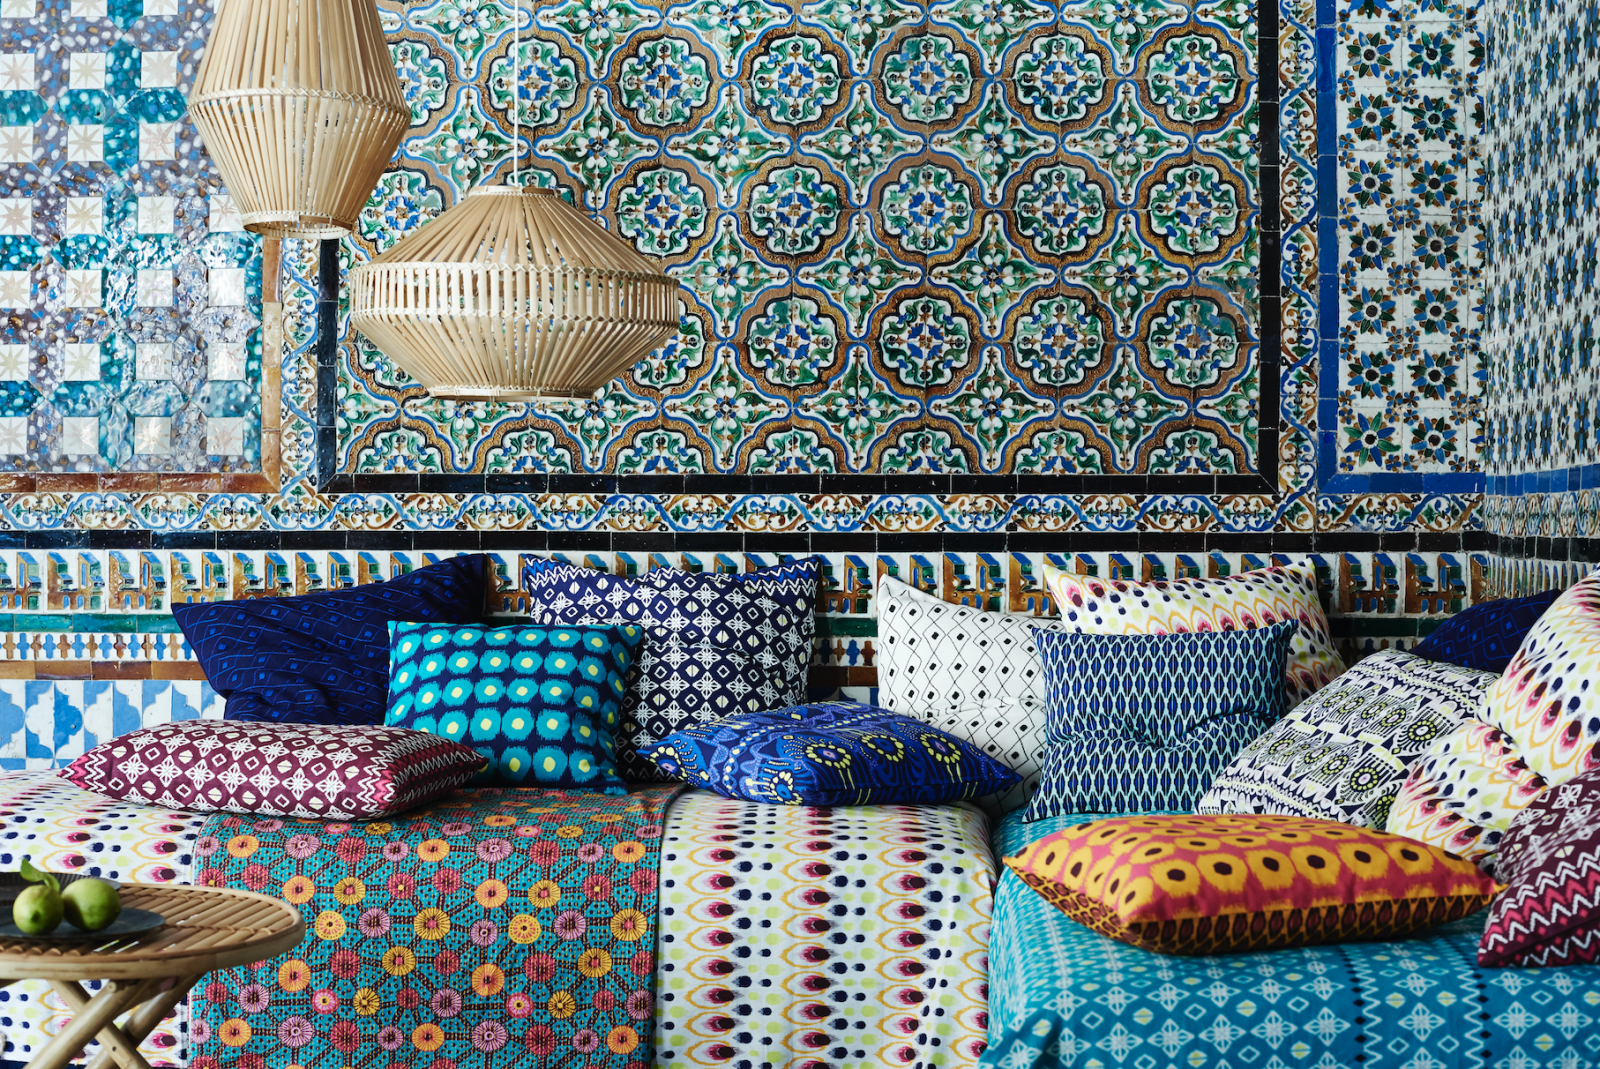 ikea 39 s jassa collection will bring a relaxed bohemian vibe to your interior